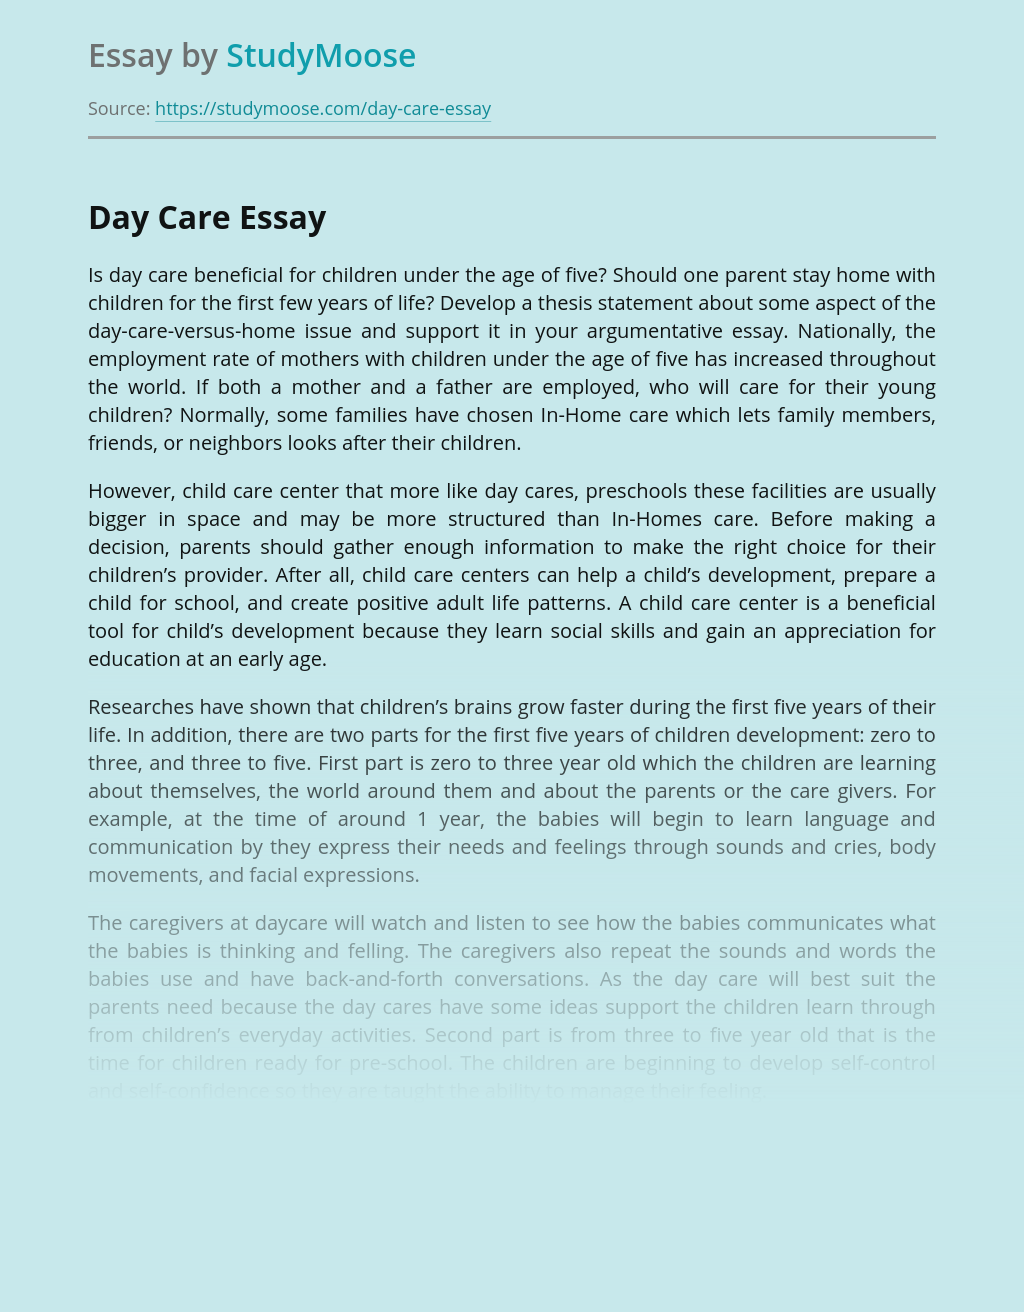 Is Day Care Beneficial for Young Children